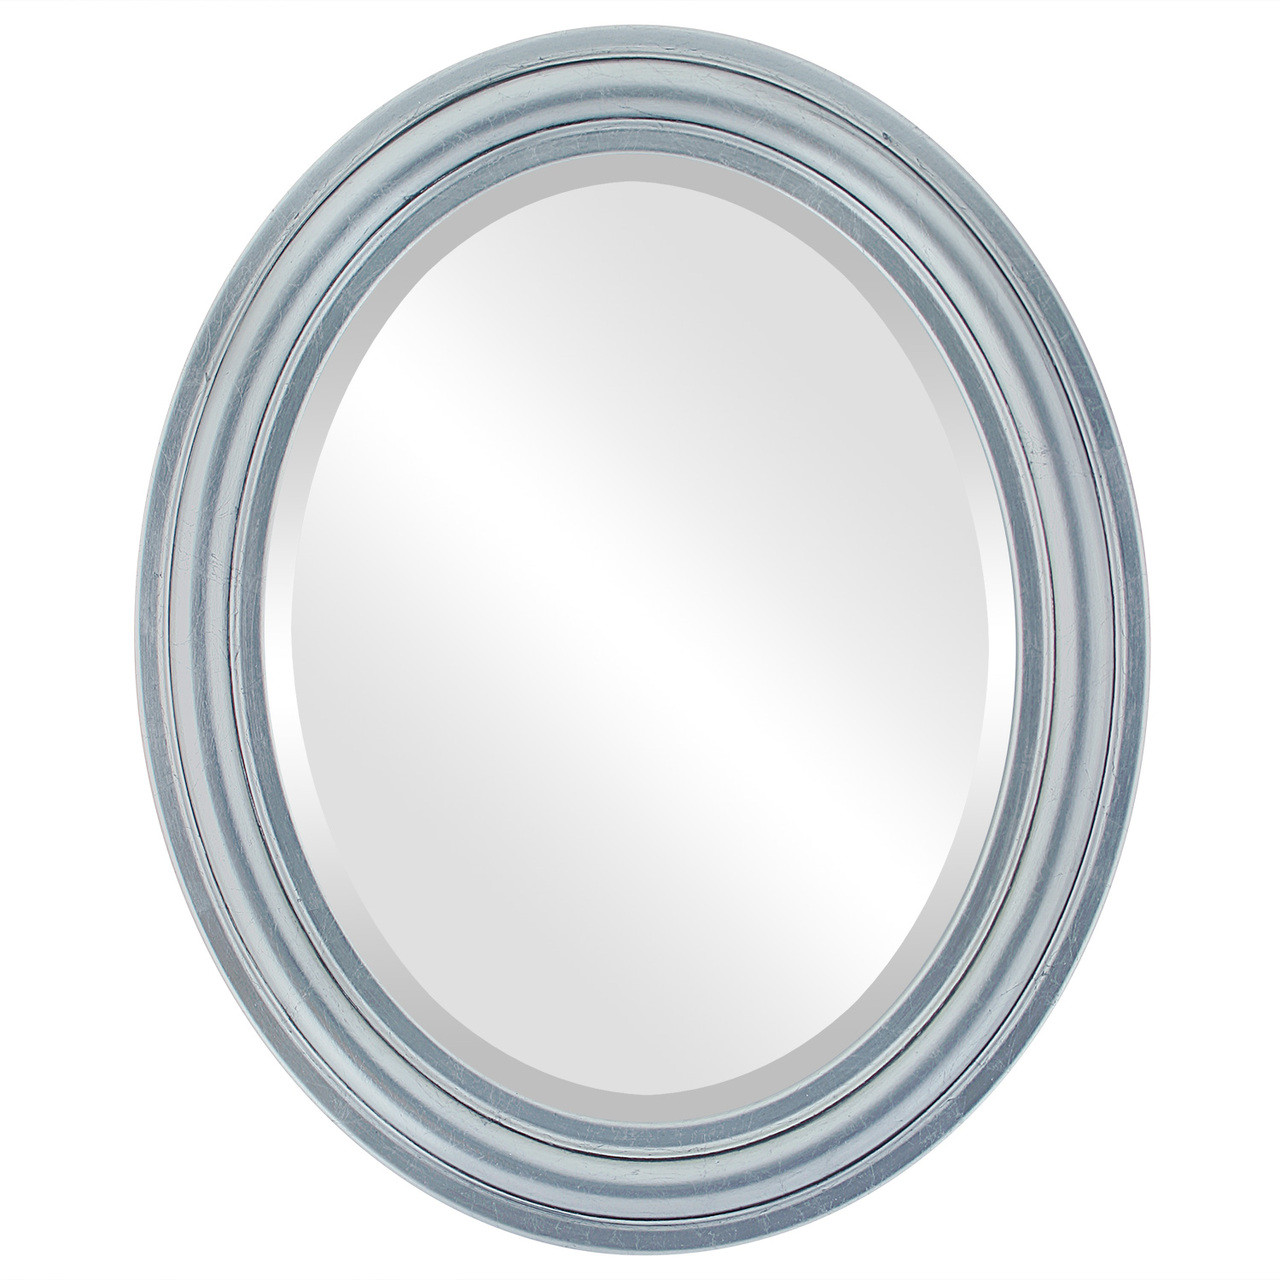 Contemporary Silver Oval Mirrors from $142 | Free Shipping